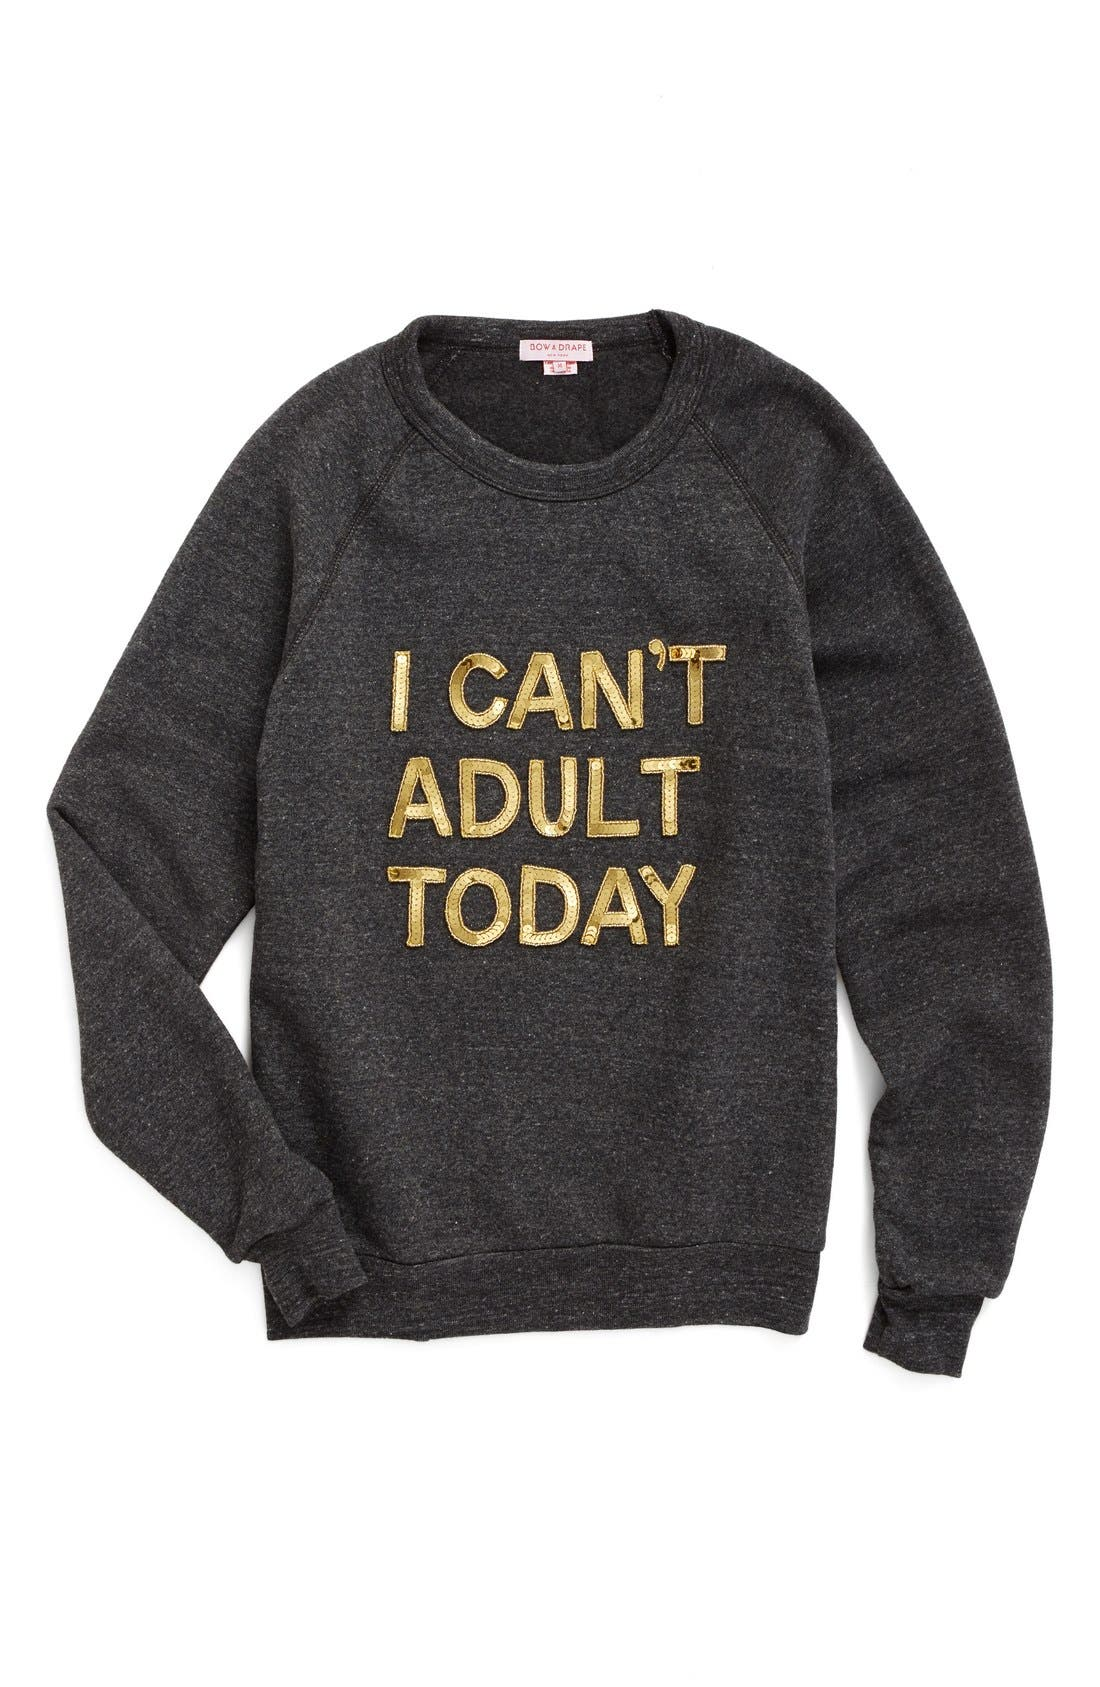 Alternate Image 1 Selected - Bow & Drape I Can't Adult Today Sweatshirt